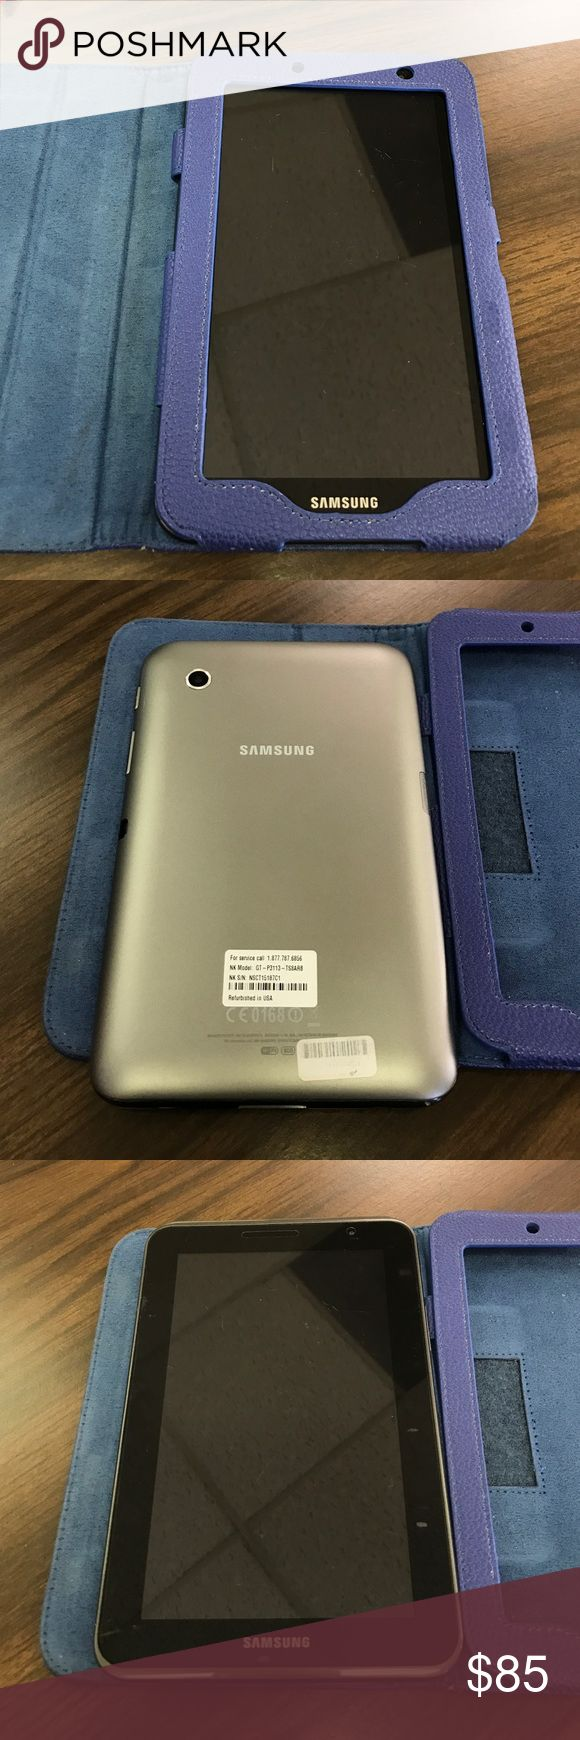 """Samsung Galaxy Tab2 Samsung Galaxy Tab2 8gb 7"""" screen with WiFi and removable microSD (not included) Titanium Gray color. It comes with blue Supcase that folds into a stand. Item is used but in great condition! Barely used, mostly for business. It has been reset and wiped clean Samsung Galaxy Other"""